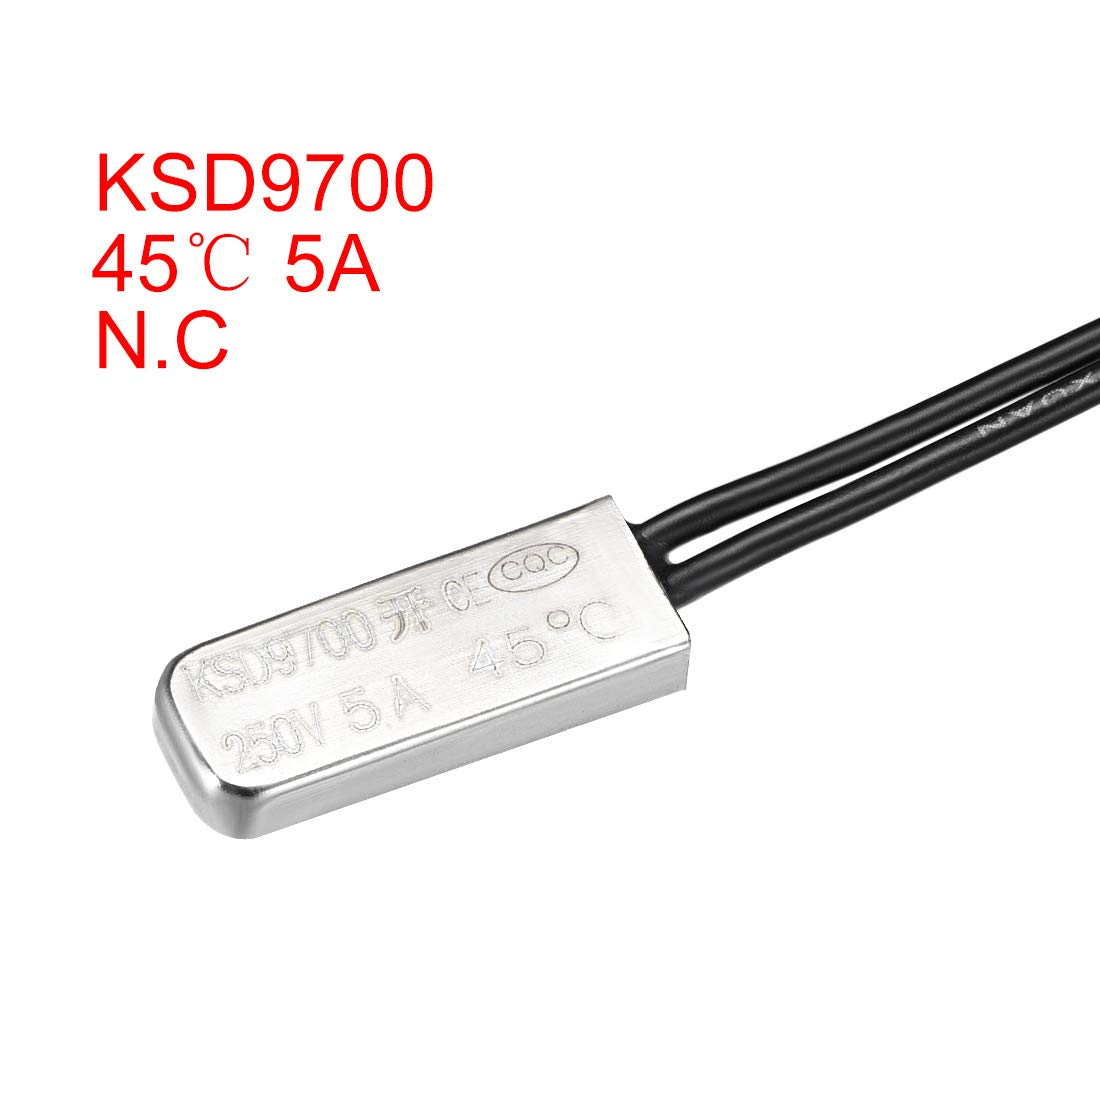 uxcell KSD9700 Thermostat N.O 5A Metal Bimetal Temperature Controller 2pcs 75℃ Normally Open Temperature Switch Thermal Switch